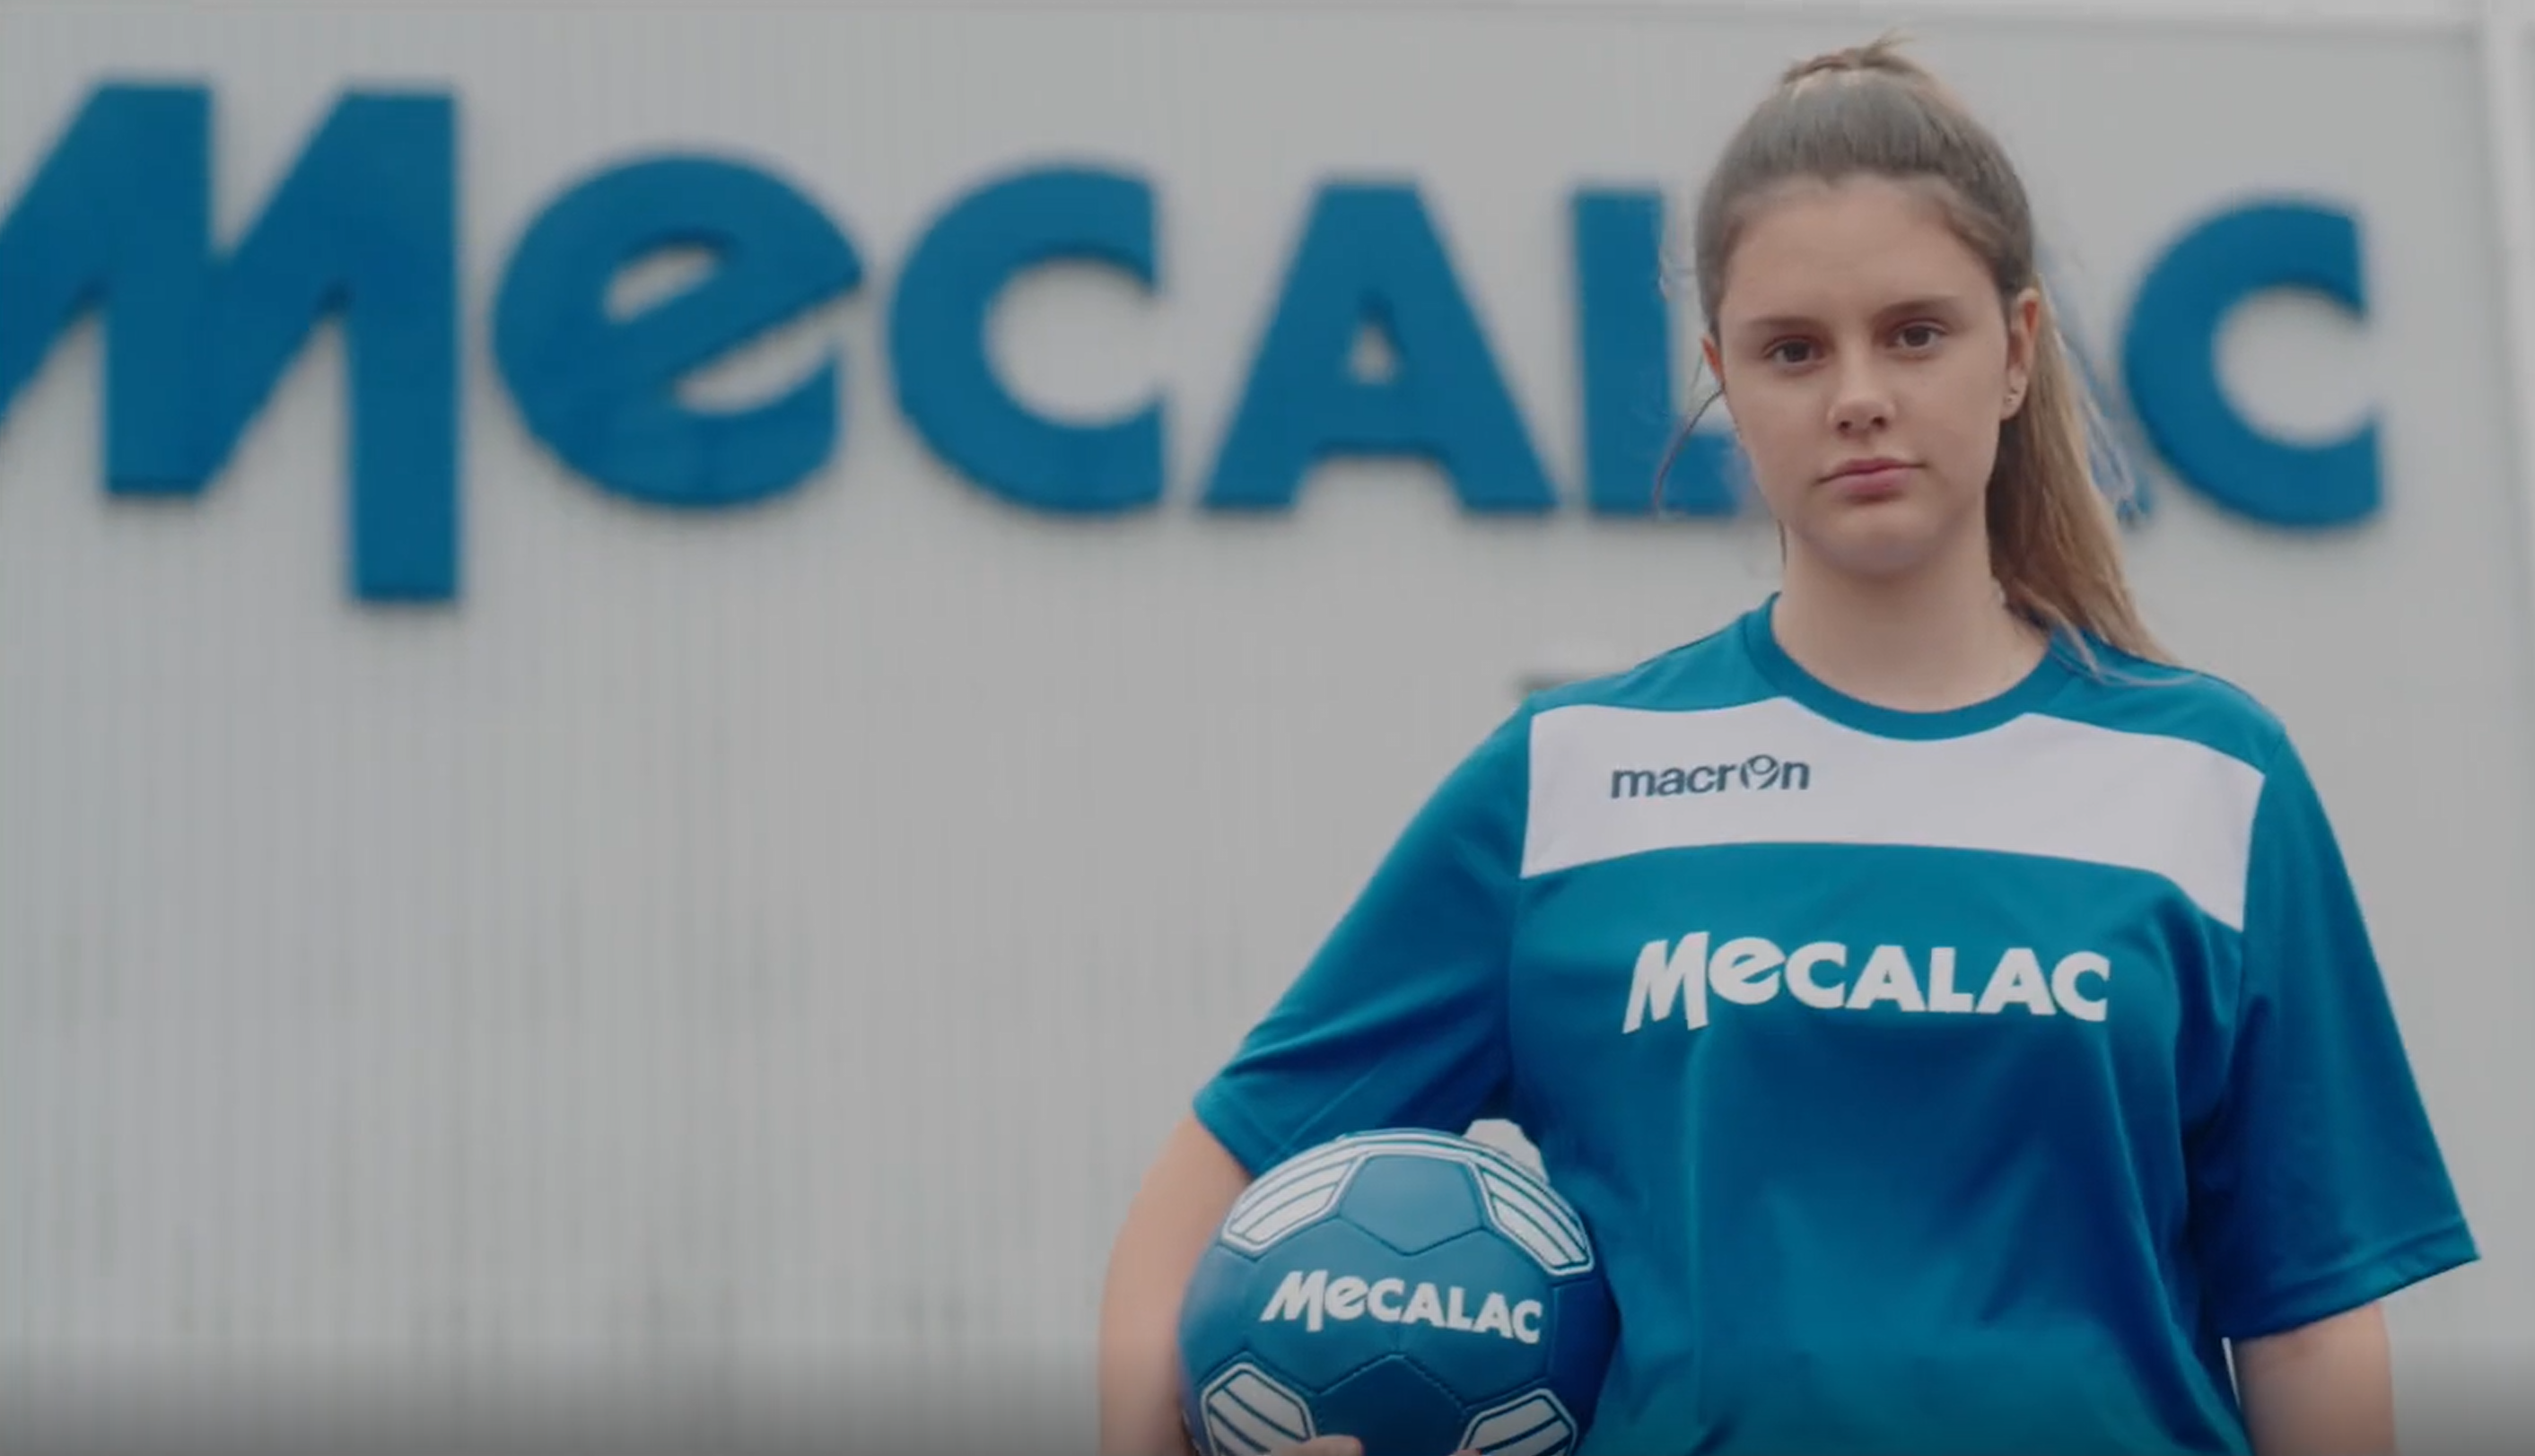 Mecalac kicks-off 'All to Play For' promotion